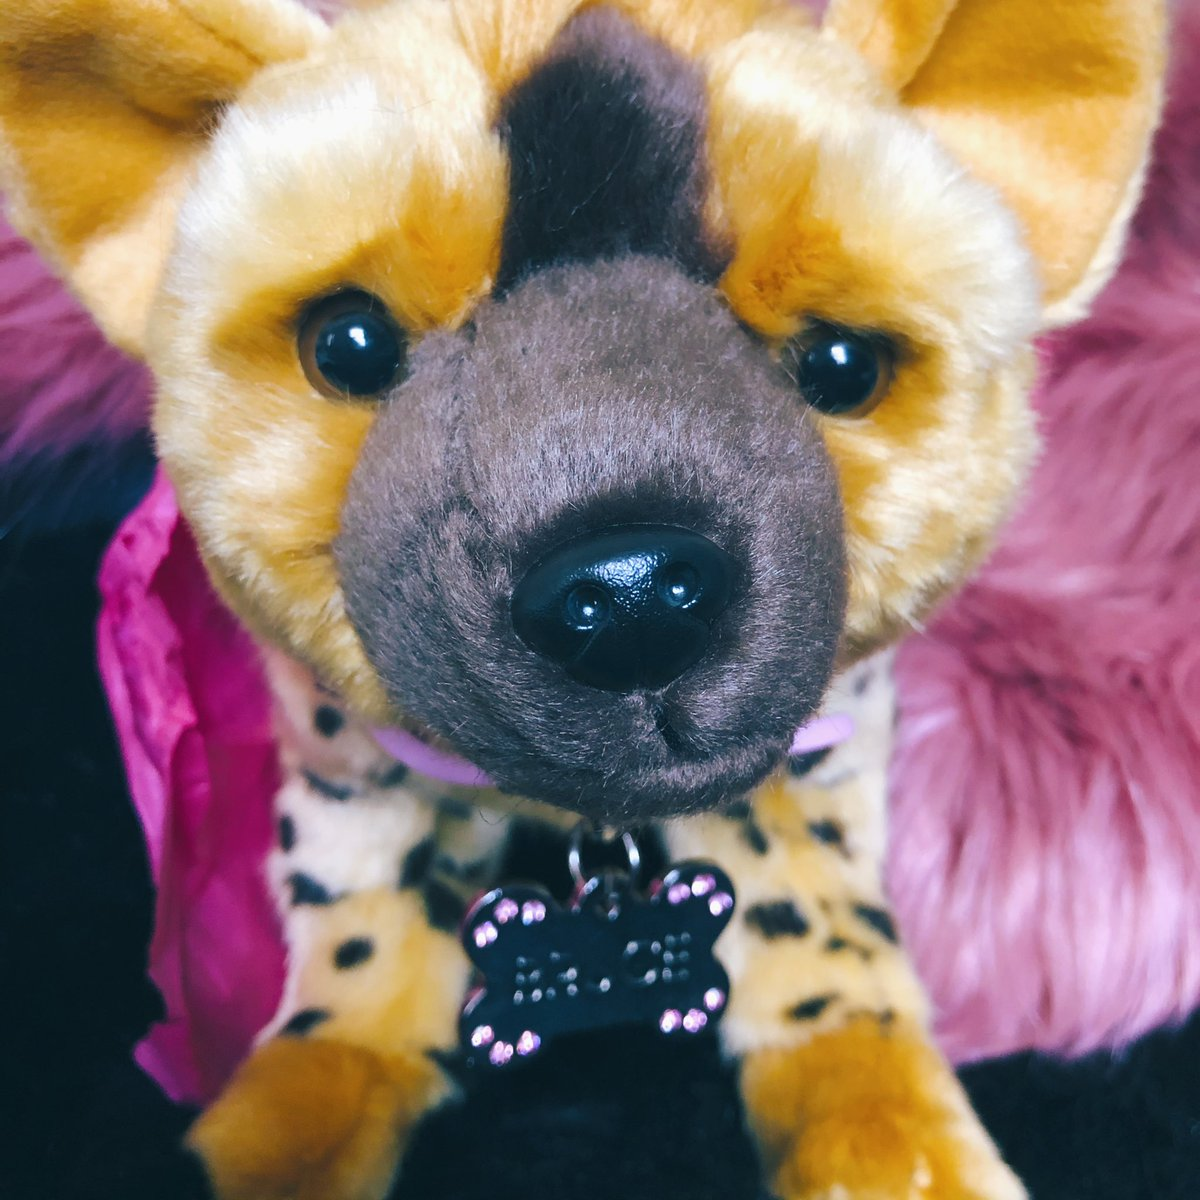 Clarisse Loughrey On Twitter I Am Now One Step Closer To My Dream Of Becoming A Hyena Mom Birdsofprey